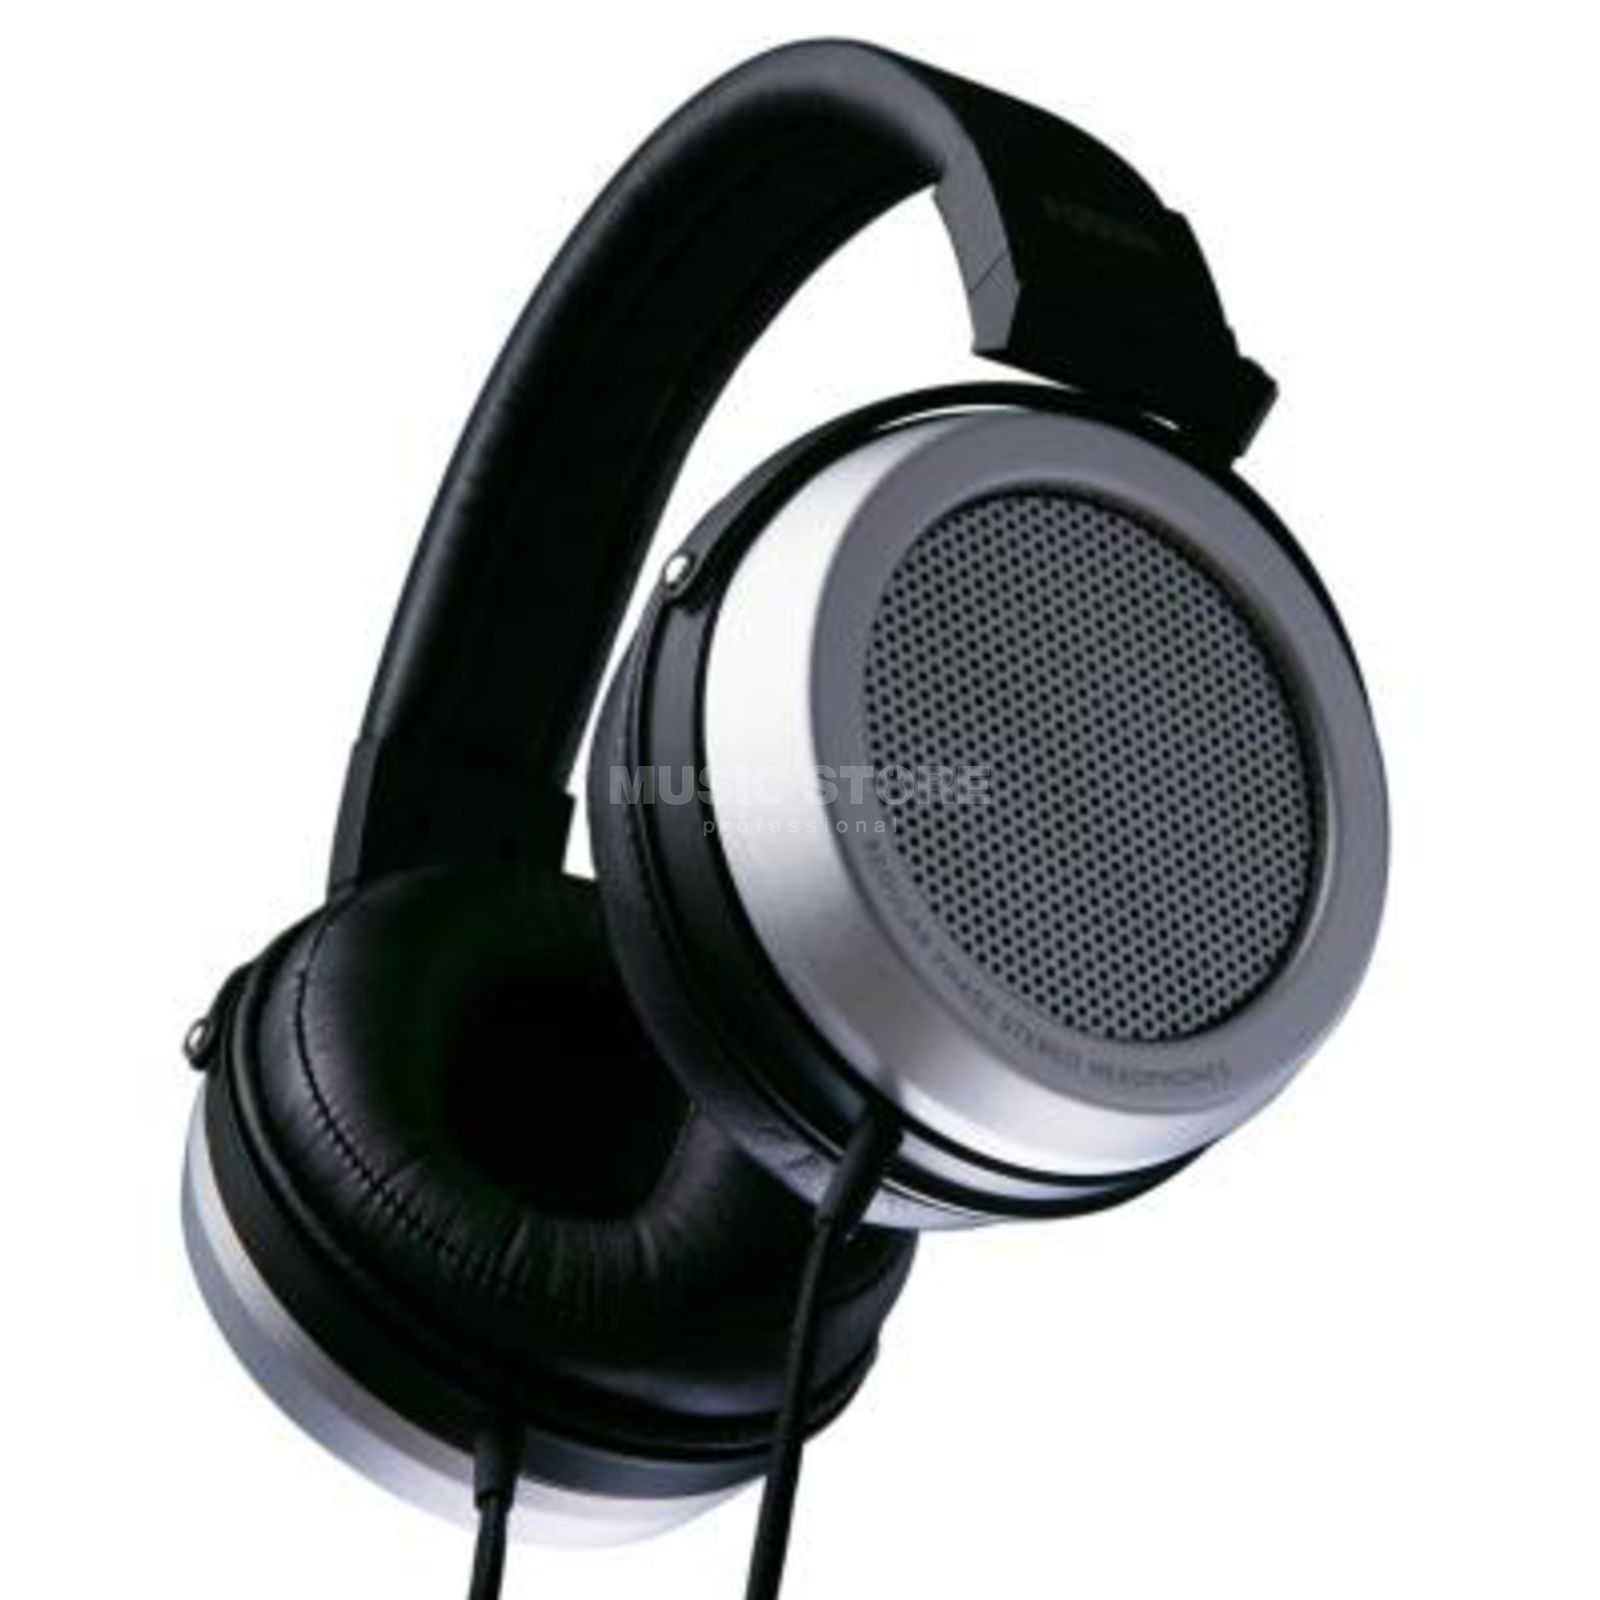 Fostex TH-500RP High-End Headphones Produktbillede